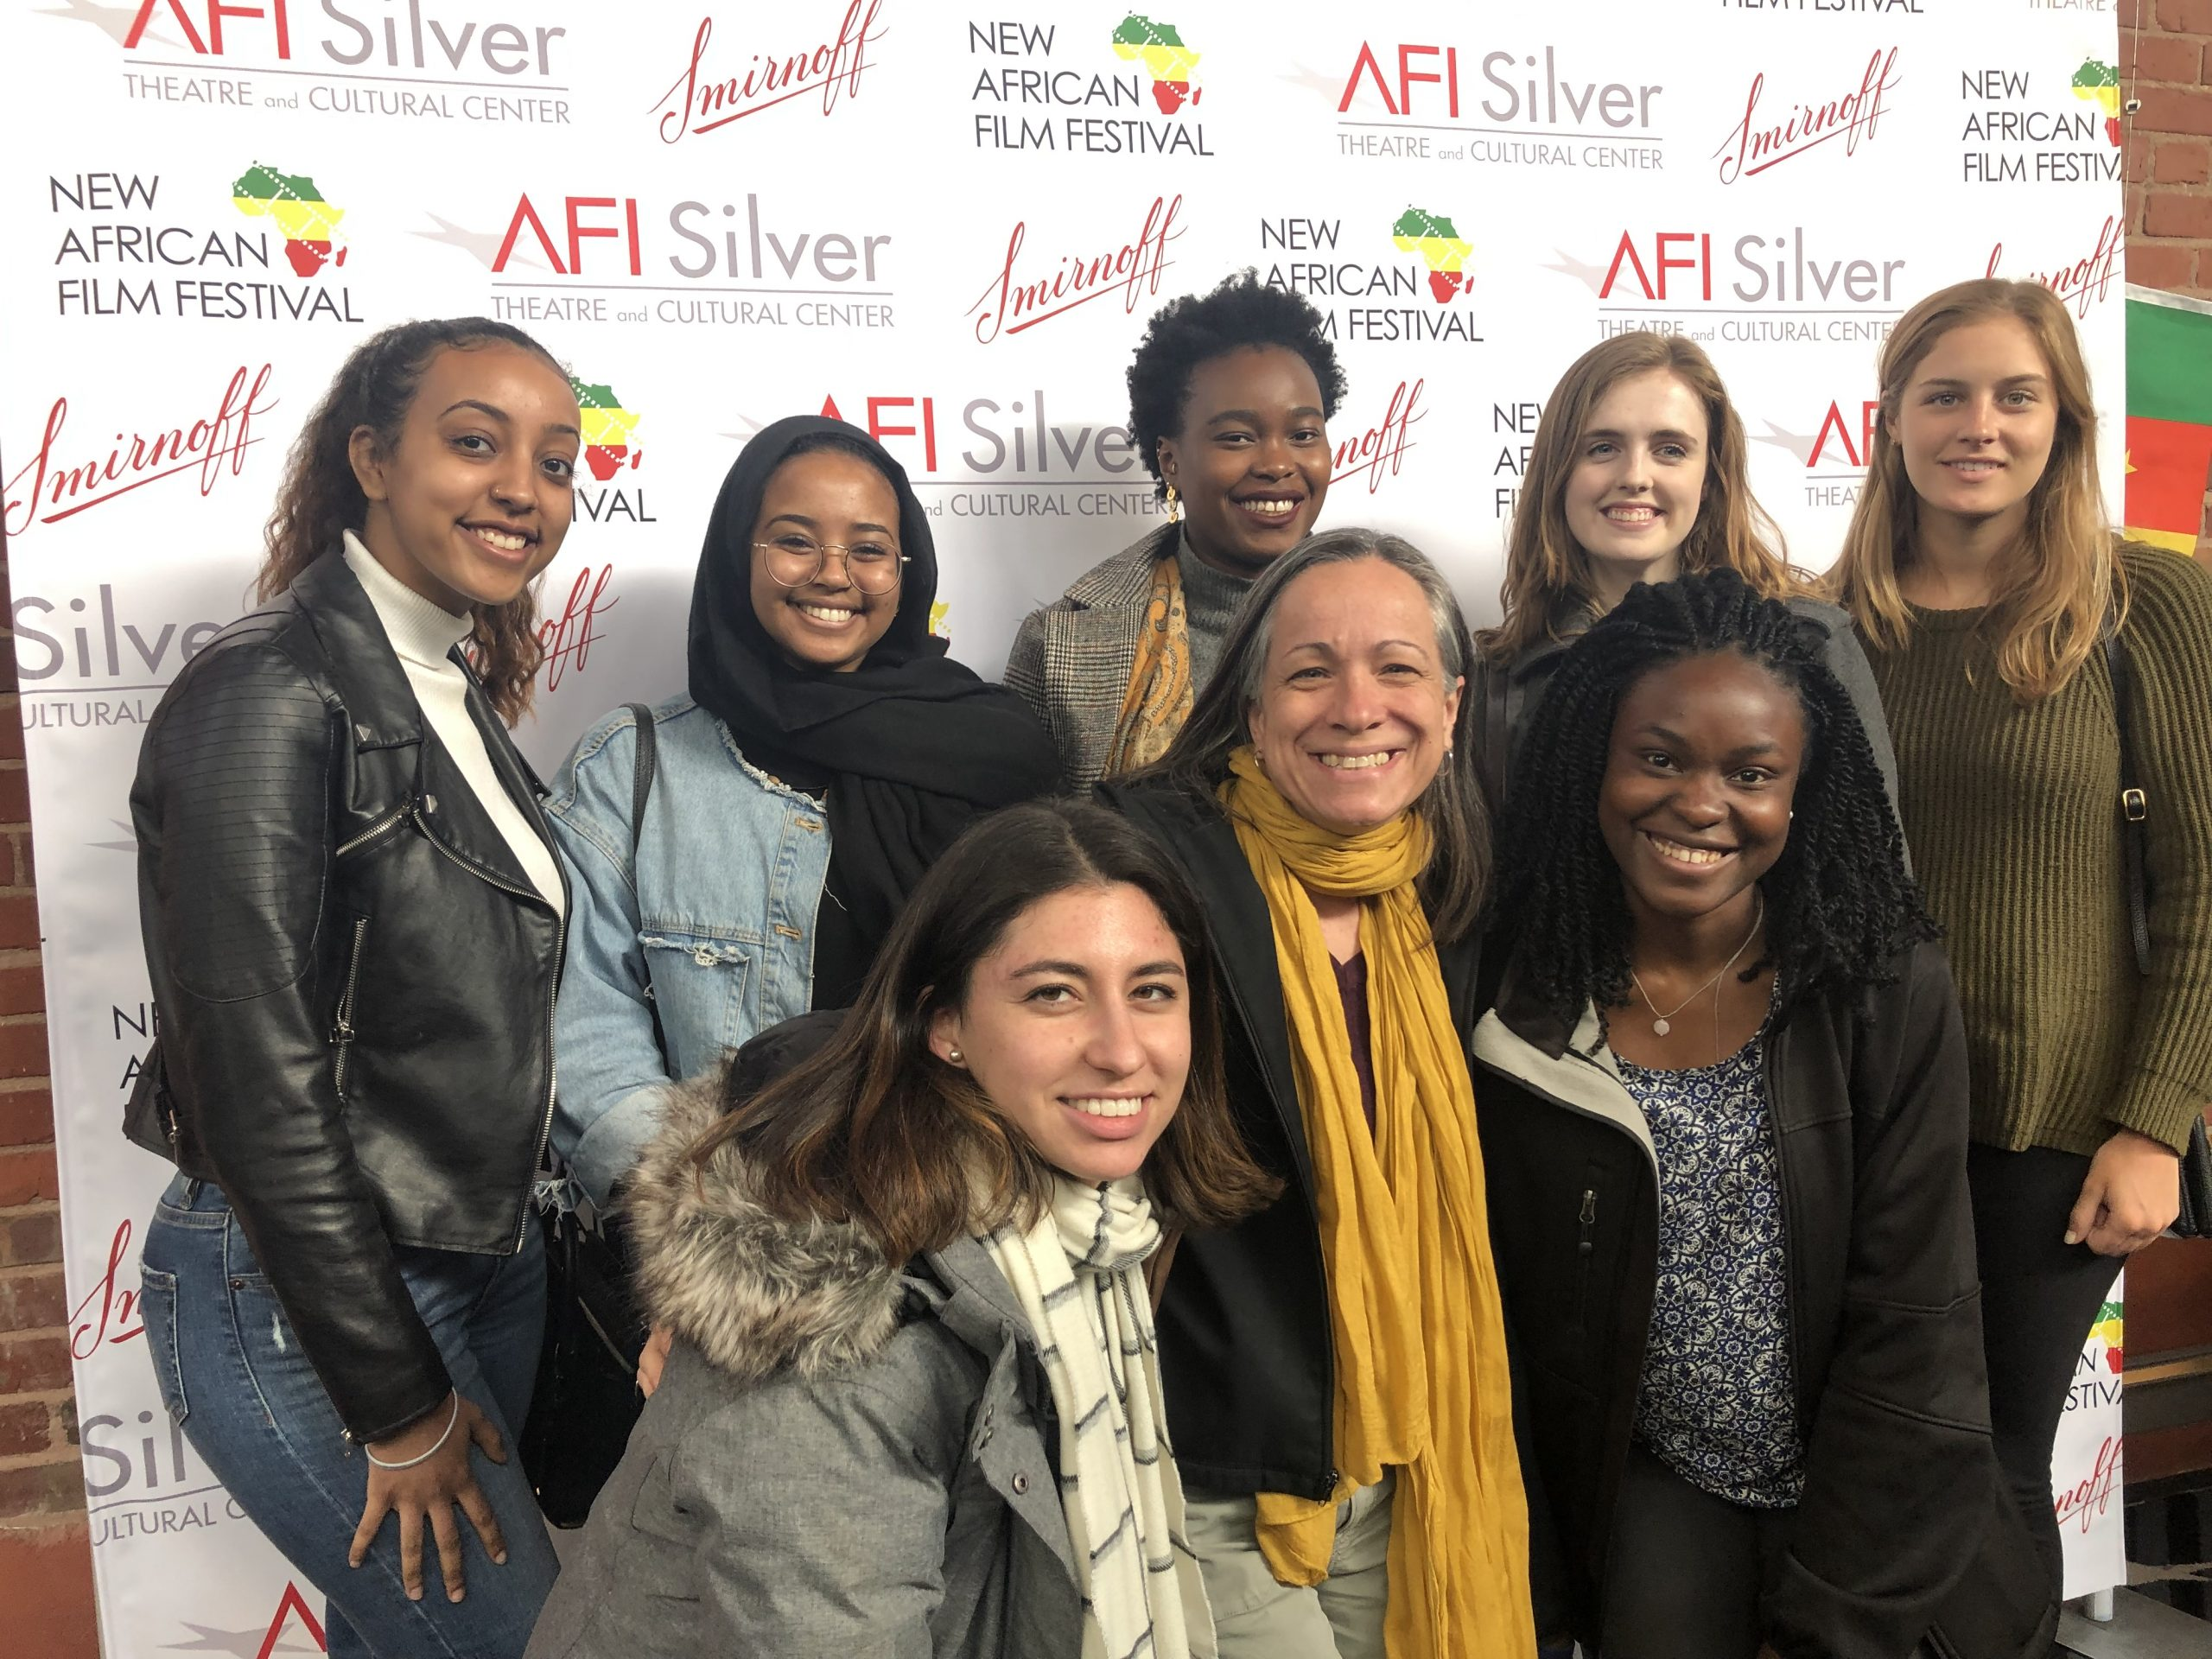 Smith with group of students in front of the photo banner at the 2019 New African Film Festival.